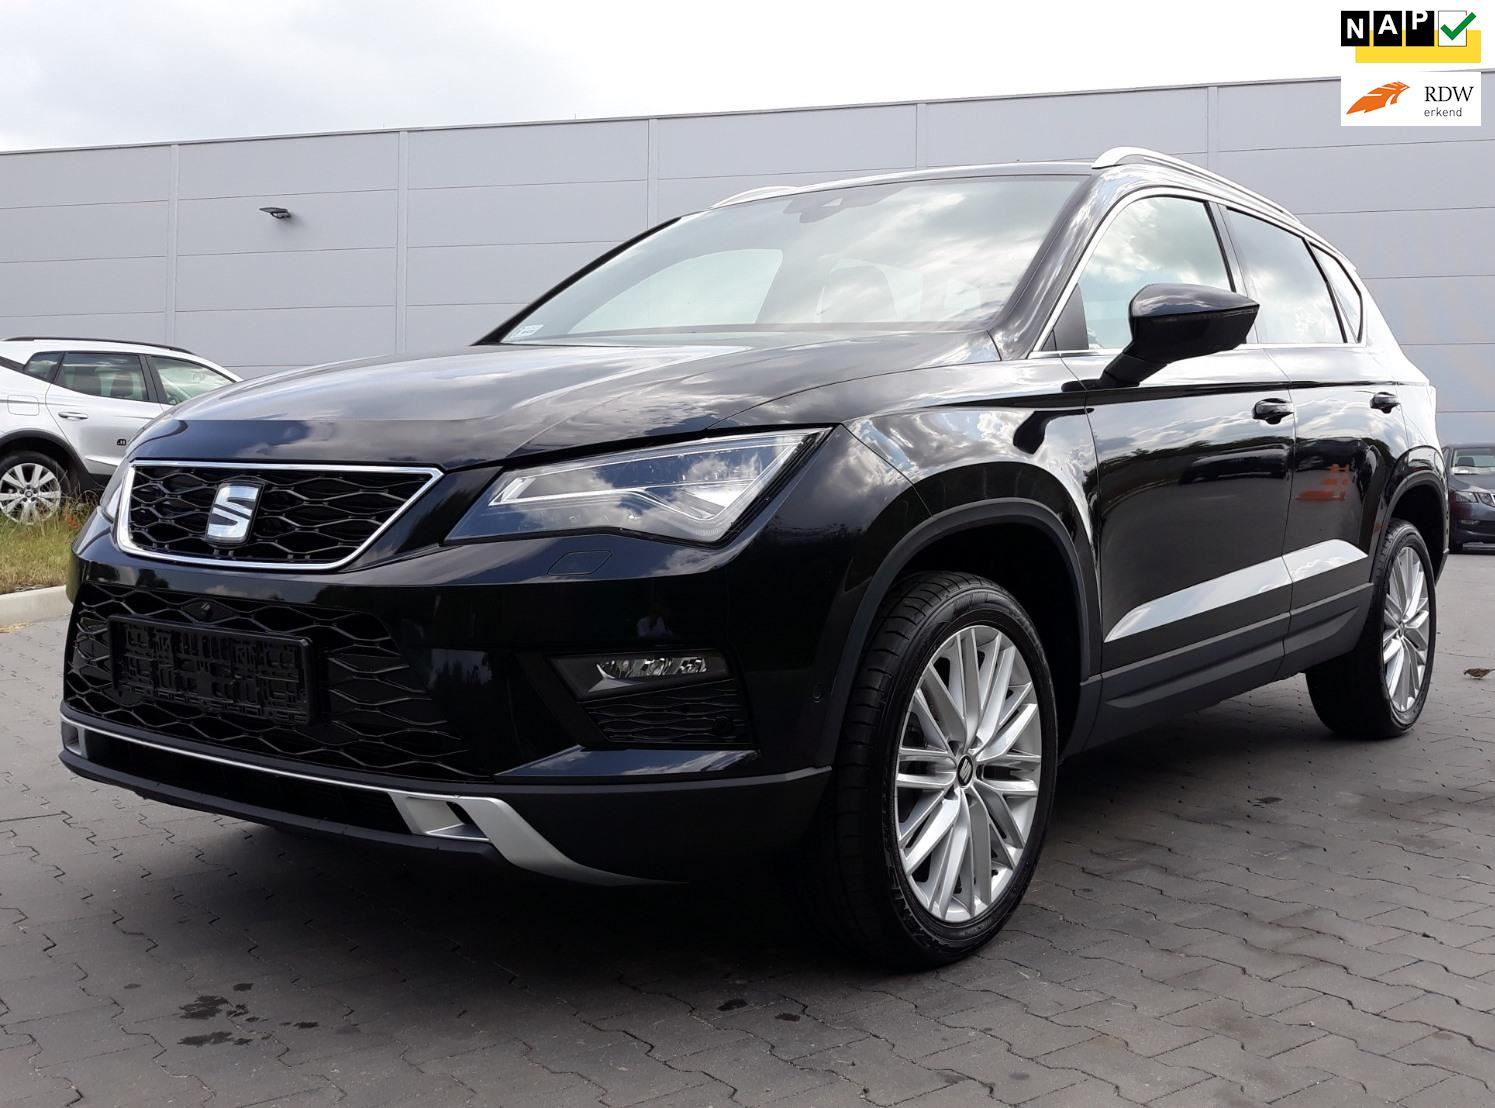 Seat Ateca 1.5 TSI Xcellence Business Intense DSG LED occasion - Autocentrum Flevoland